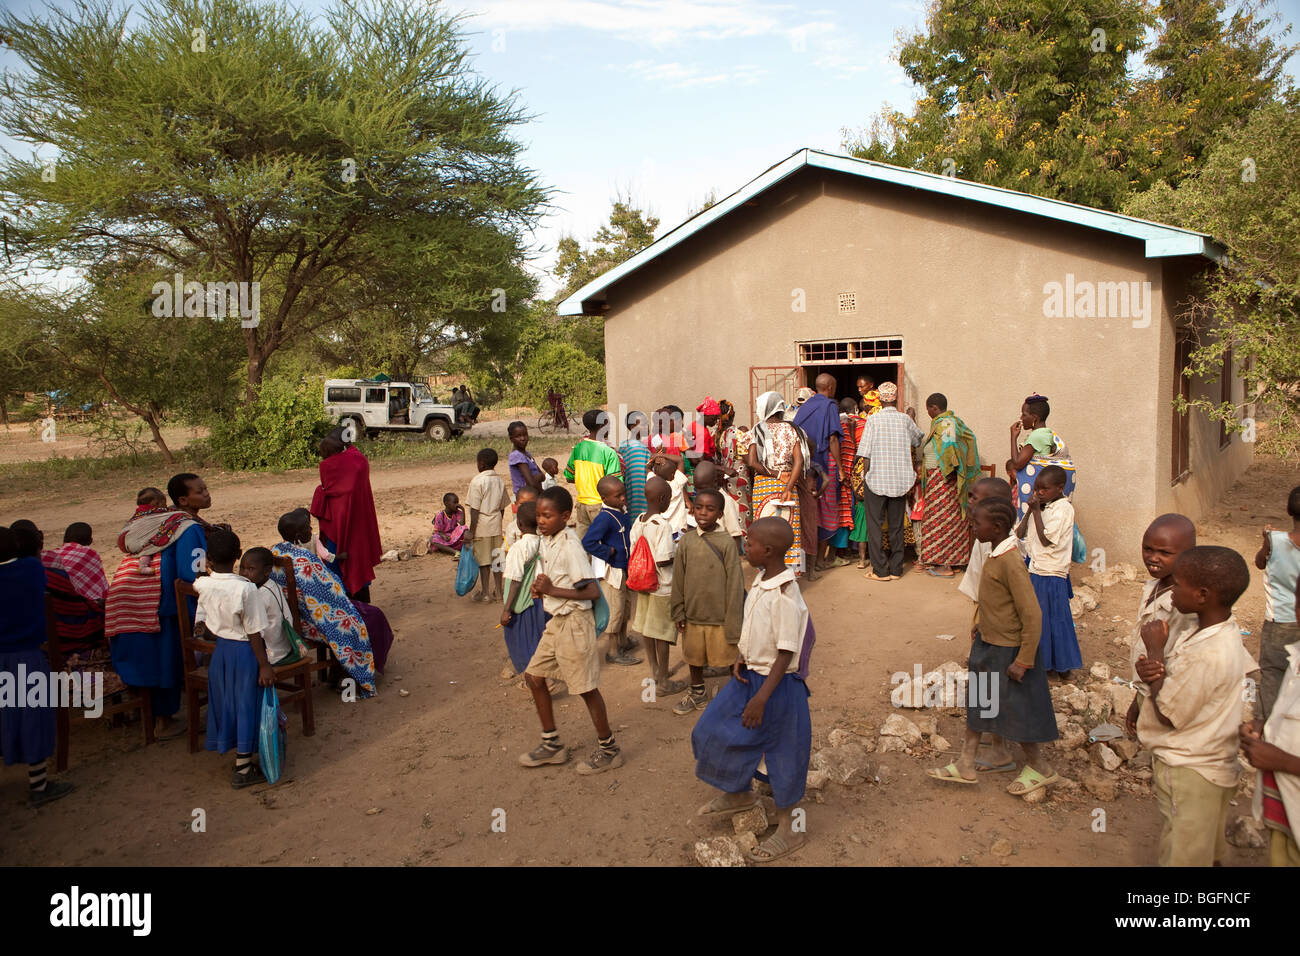 A crowd forms at a medical dispensary in Tanzania: Manyara Region, Simanjiro District, Kilombero Village. - Stock Image